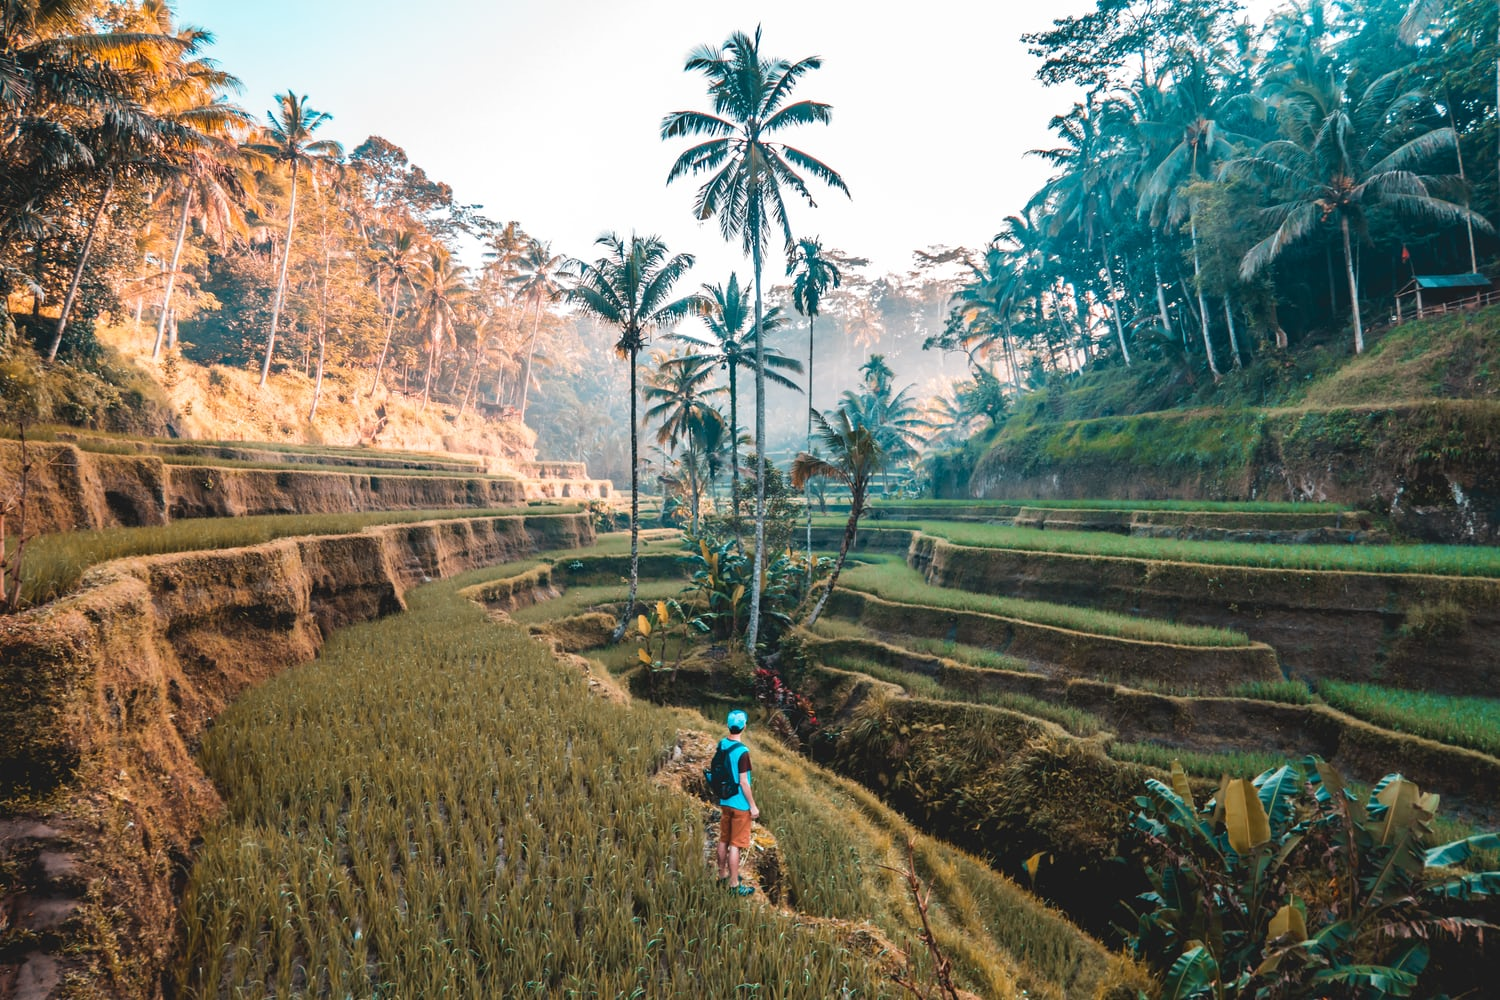 Ricefields Tegallang | Jamie_fenn on Unsplash